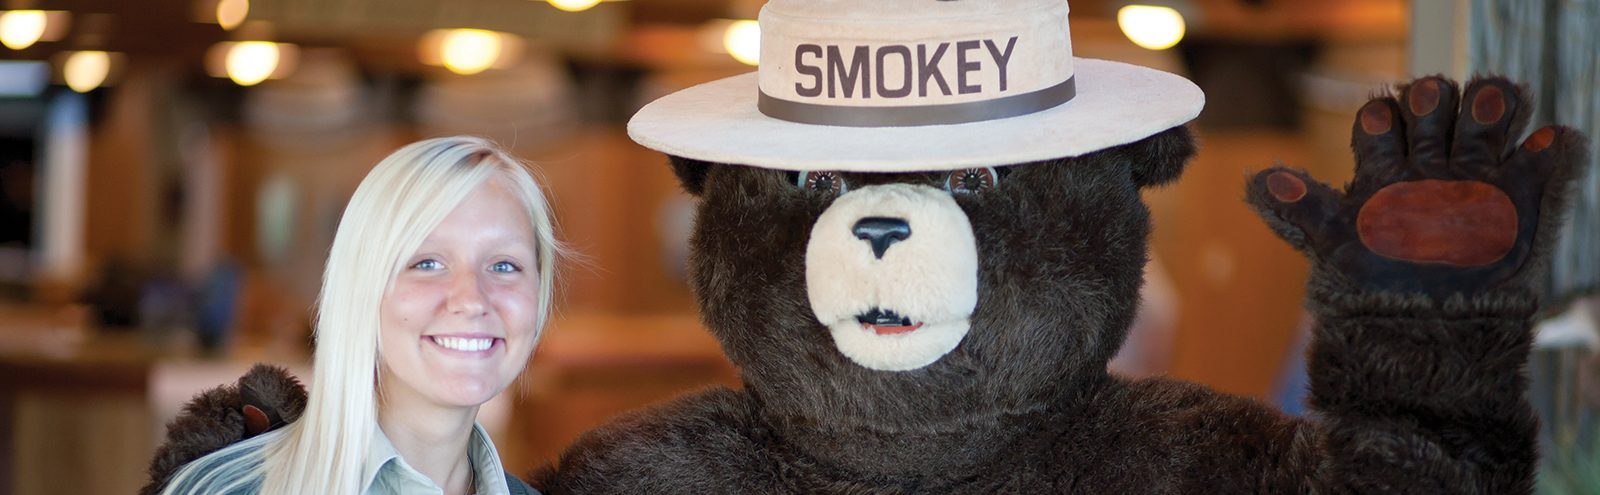 Girl with Smokey the Bear